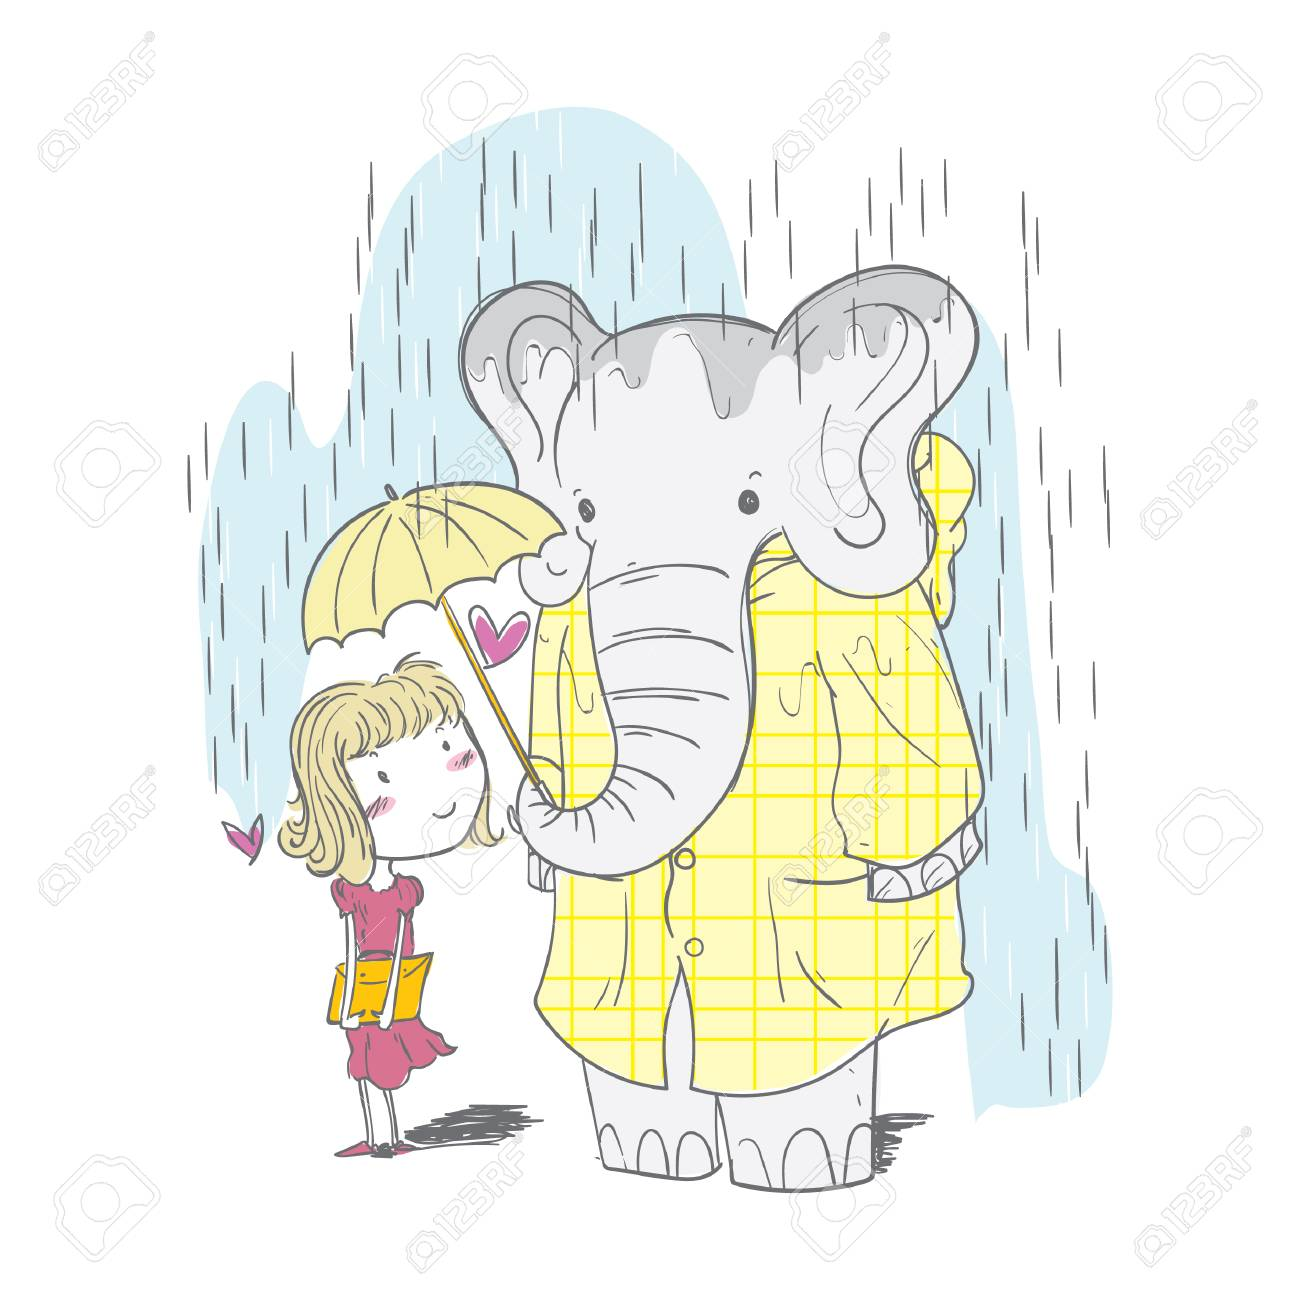 elephant sharing an umbrella with a girl.